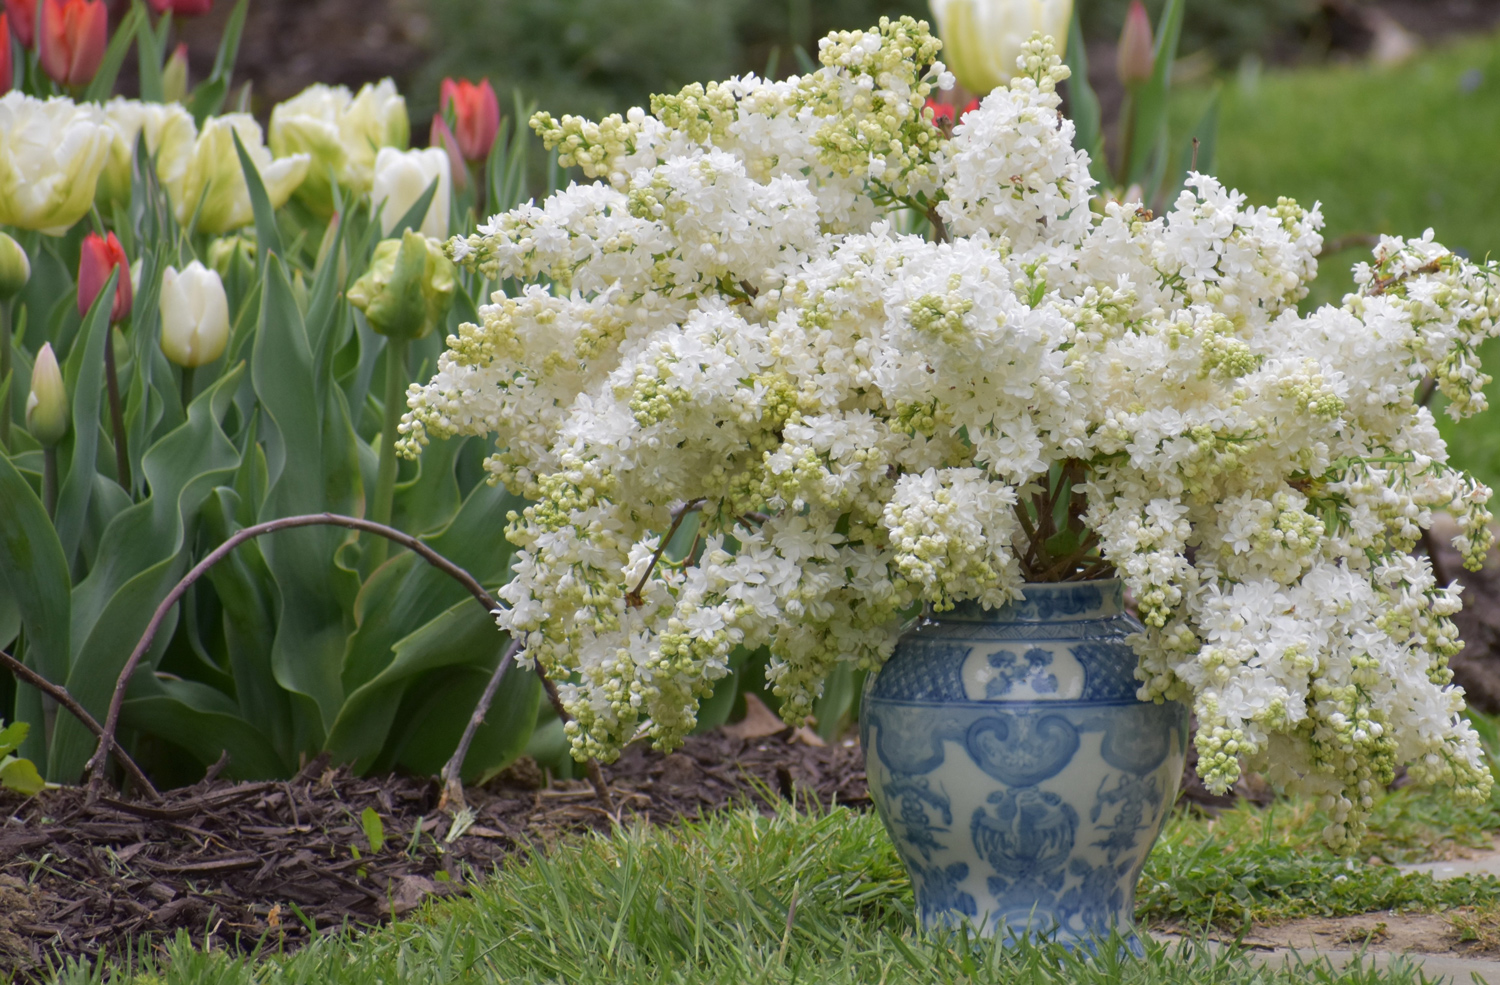 How to Get the Longest Vase Life from Fresh Cut Flowers - Longfield Gardens